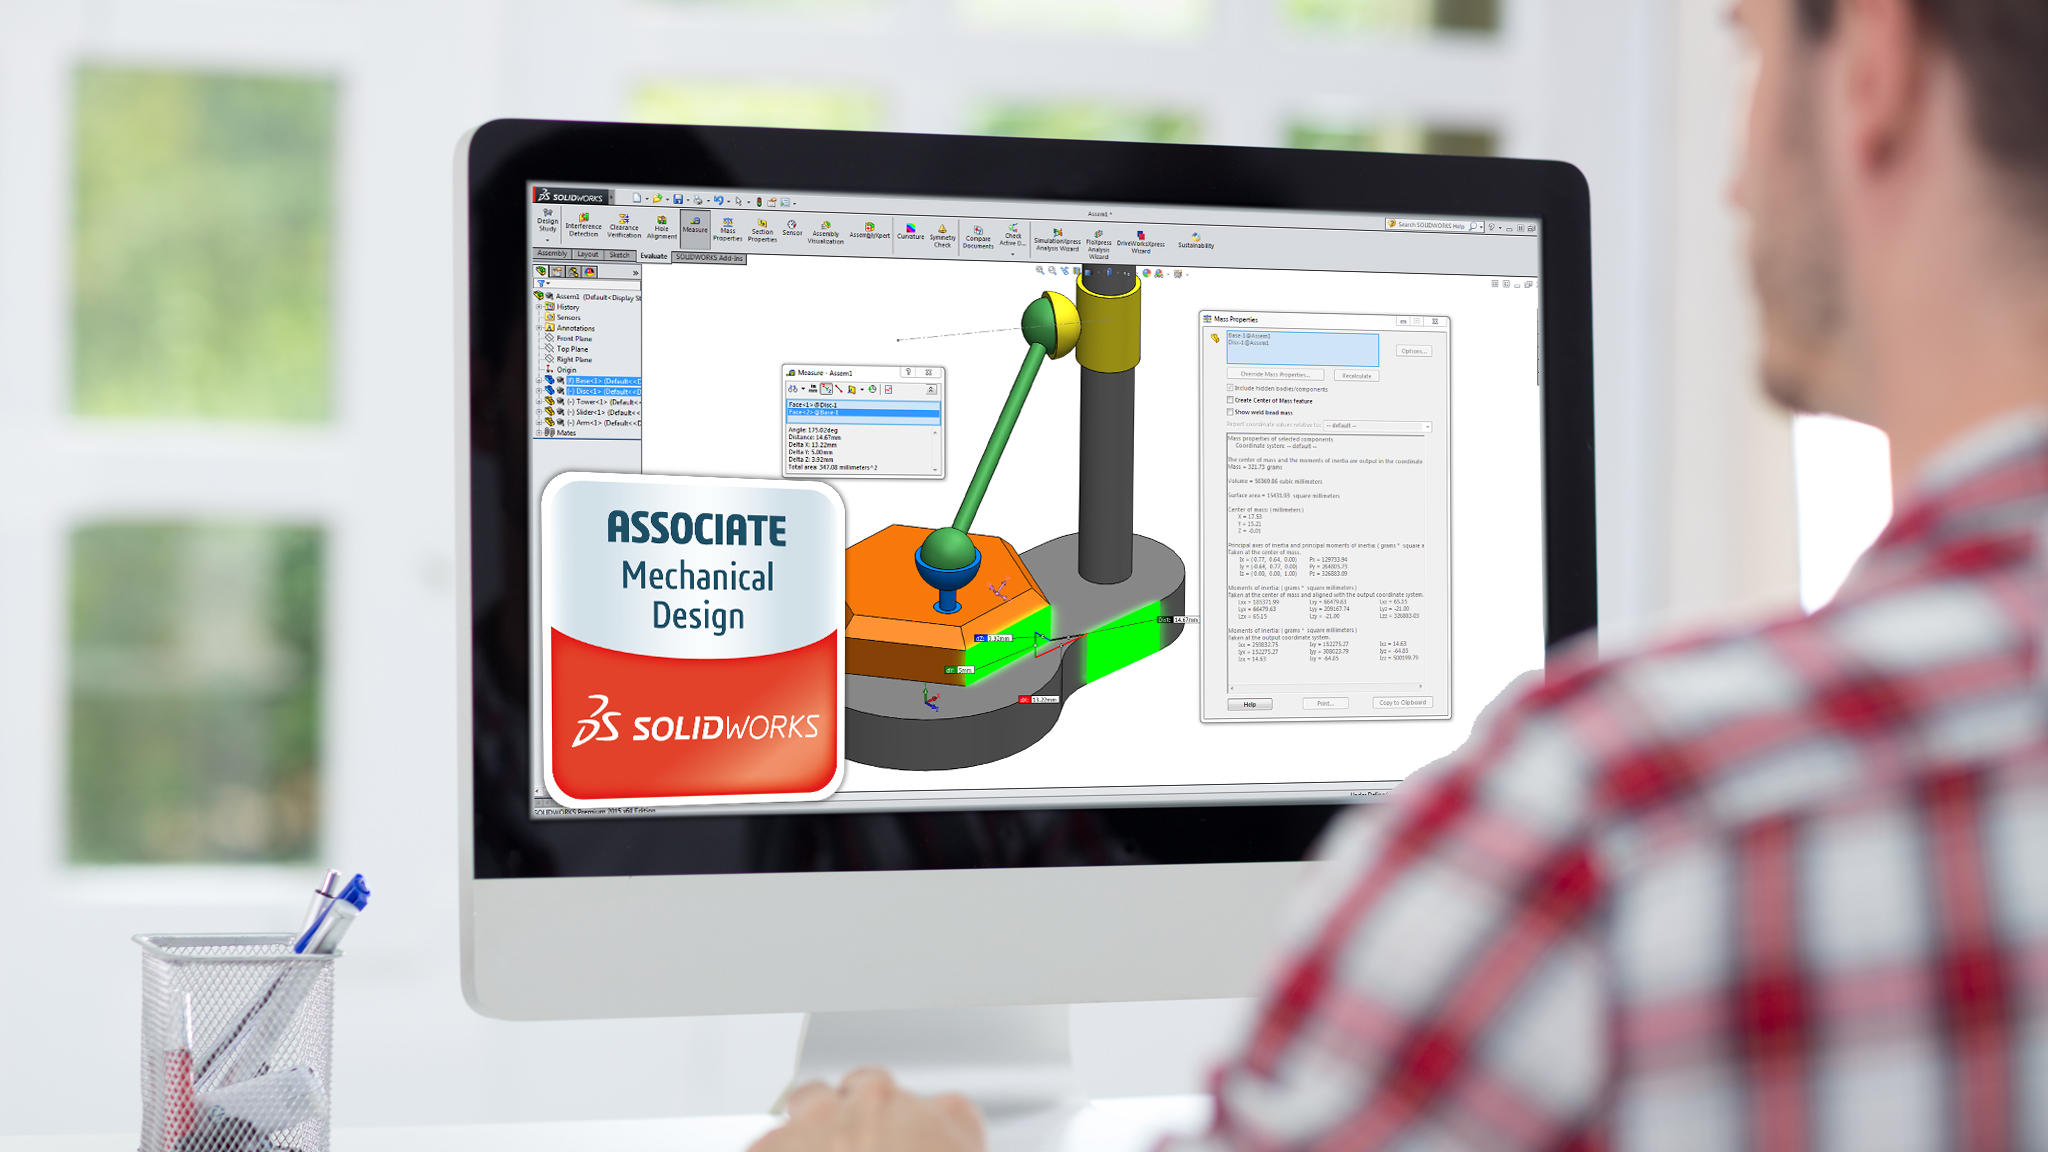 Certified Solidworks Associate Cswa Preparation Course Selfpac3d